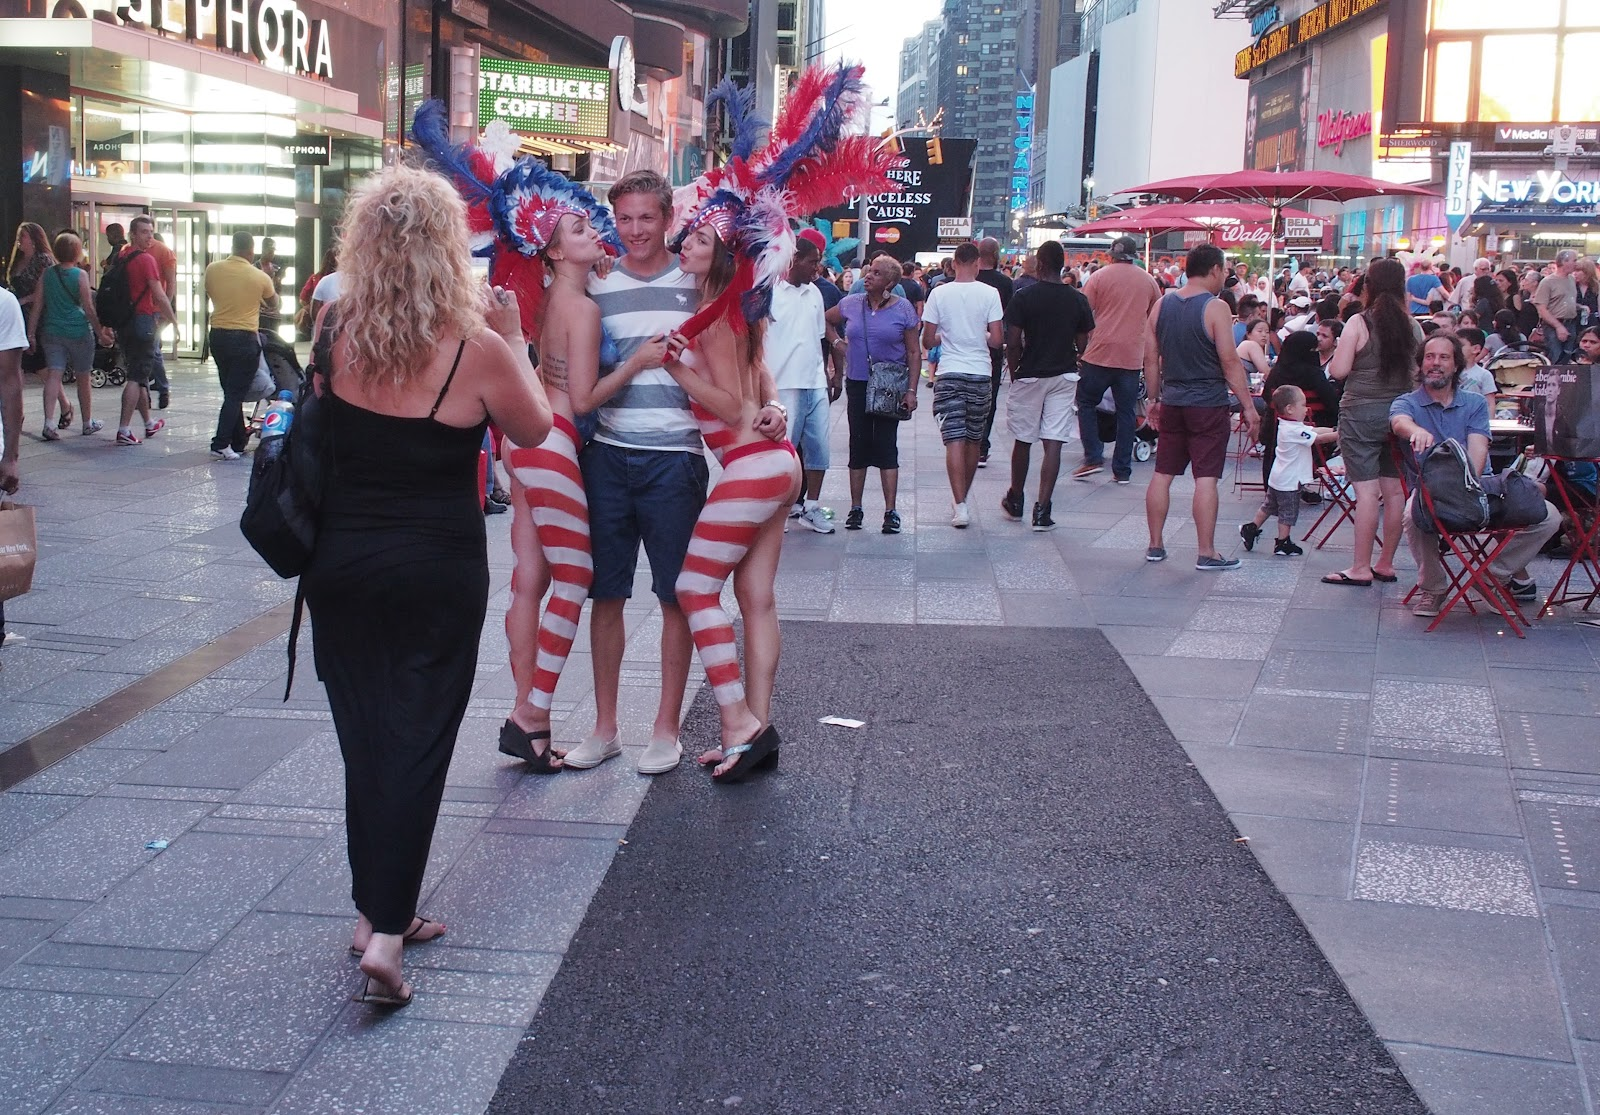 Body Paint #bodypaint #timessquare #nyc #americanflag #streetperformer #street  2013